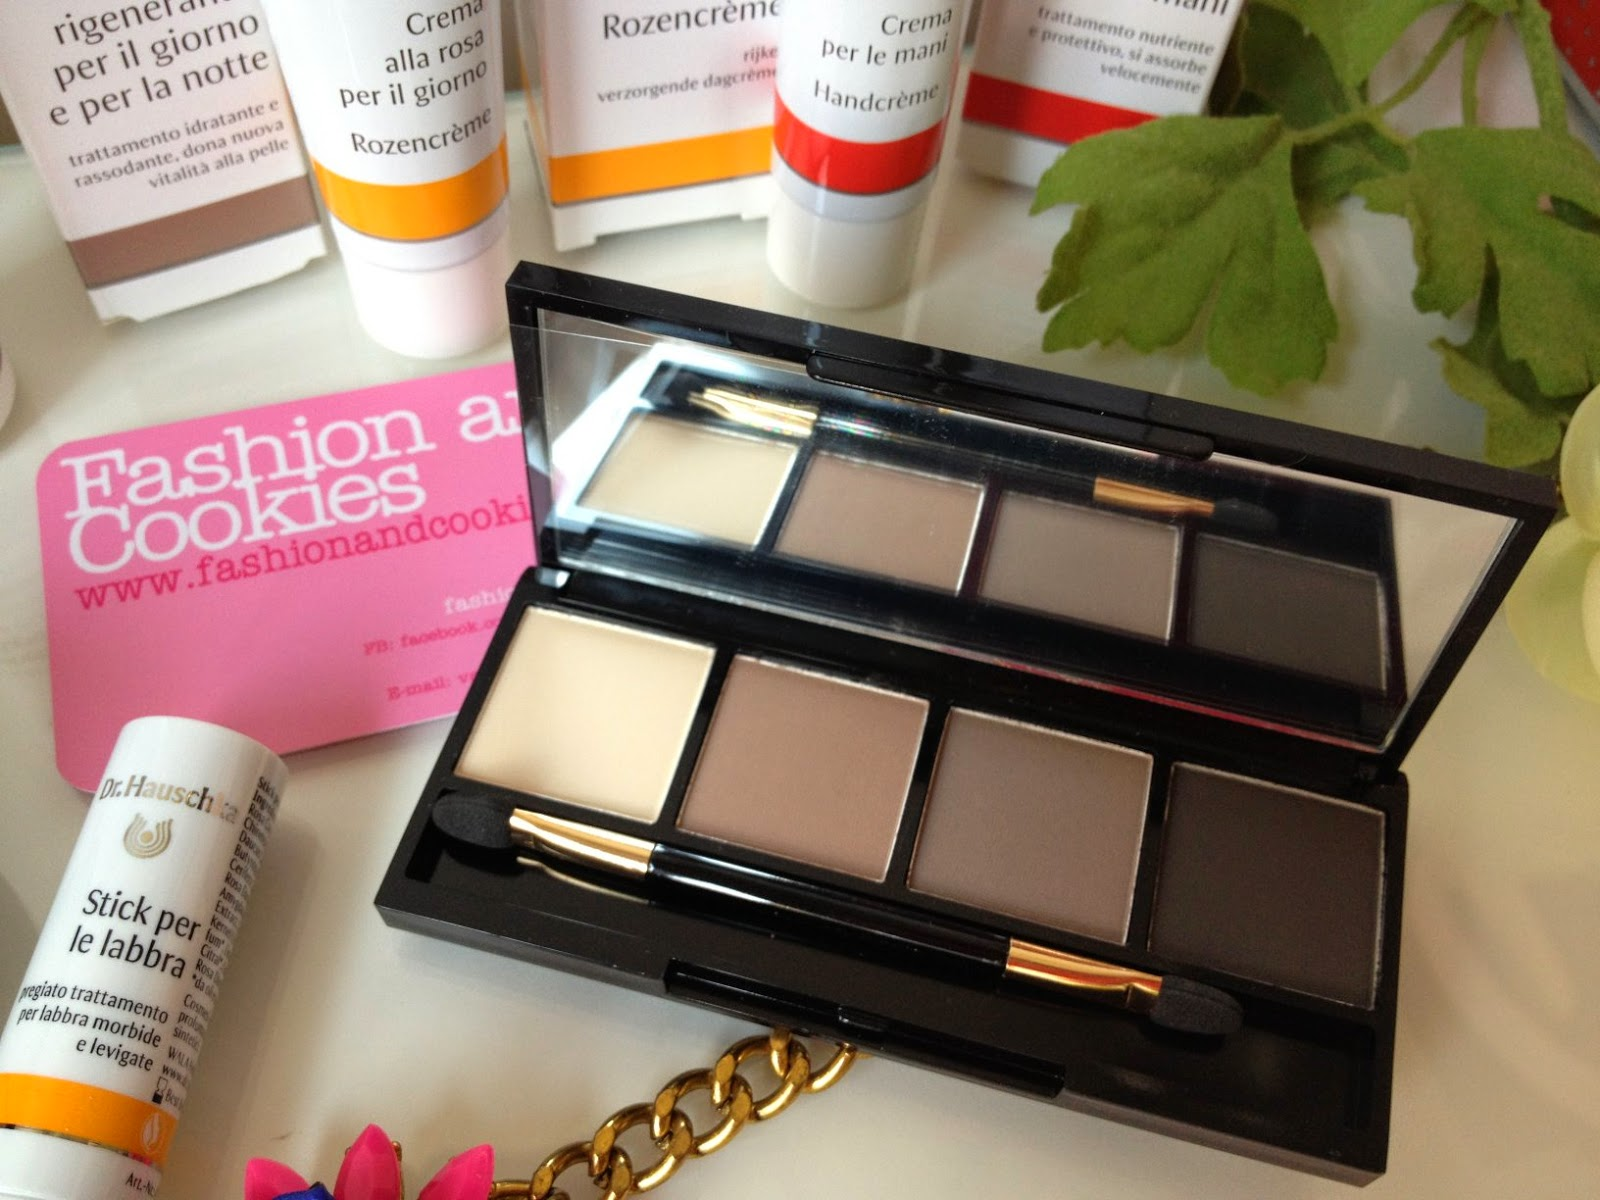 Dr Hauschka, Dr Hauschka eyeshadow palette 01 review, Fashion and Cookies, fashion blogger